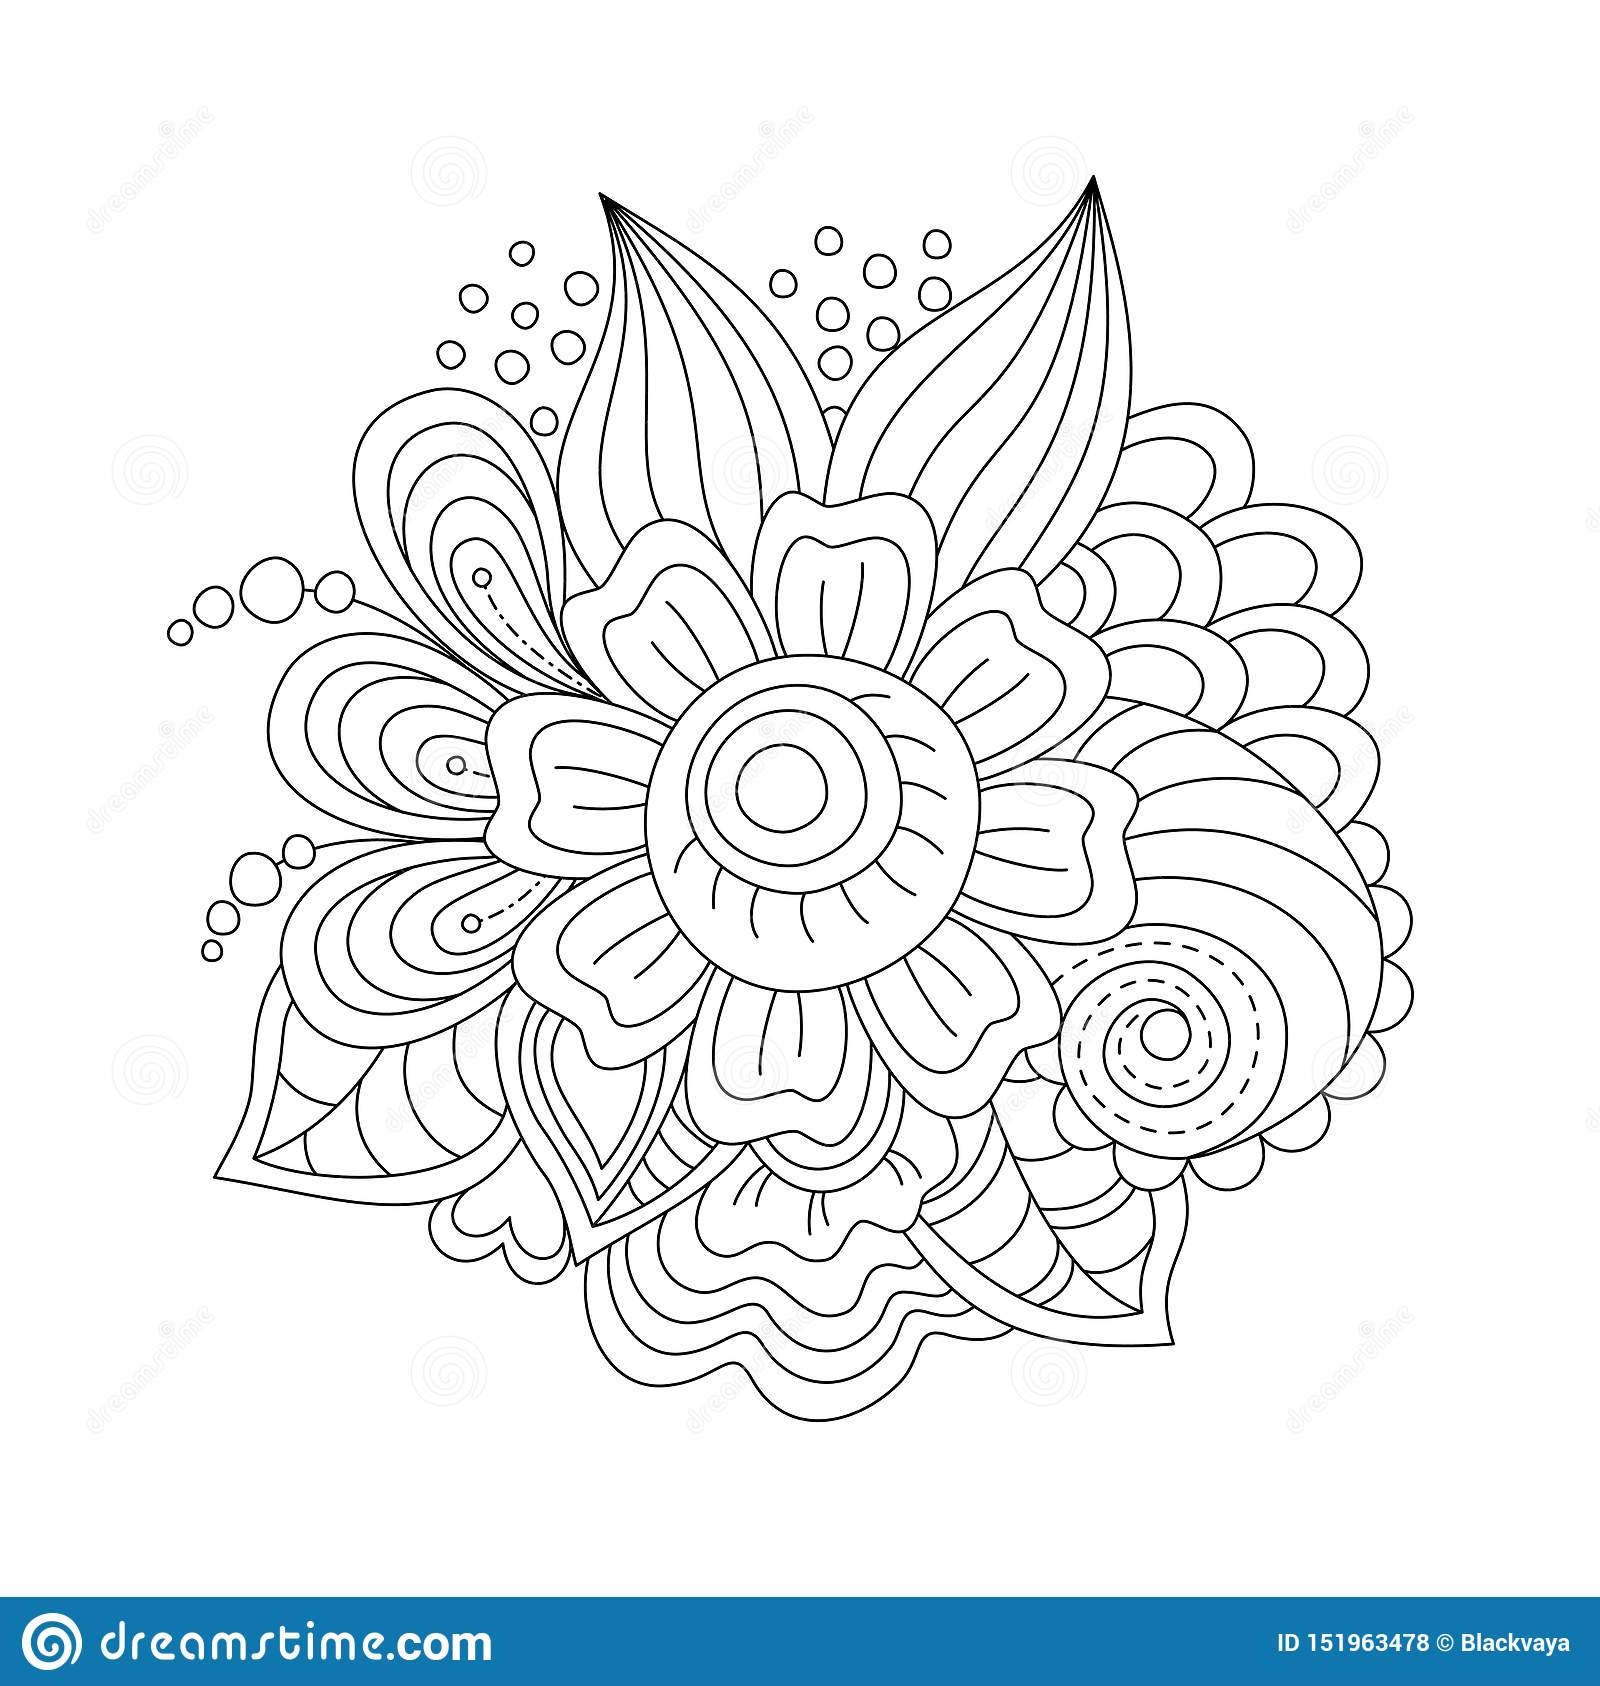 Zentangle Flowers Coloring Page For Adults And Children ...